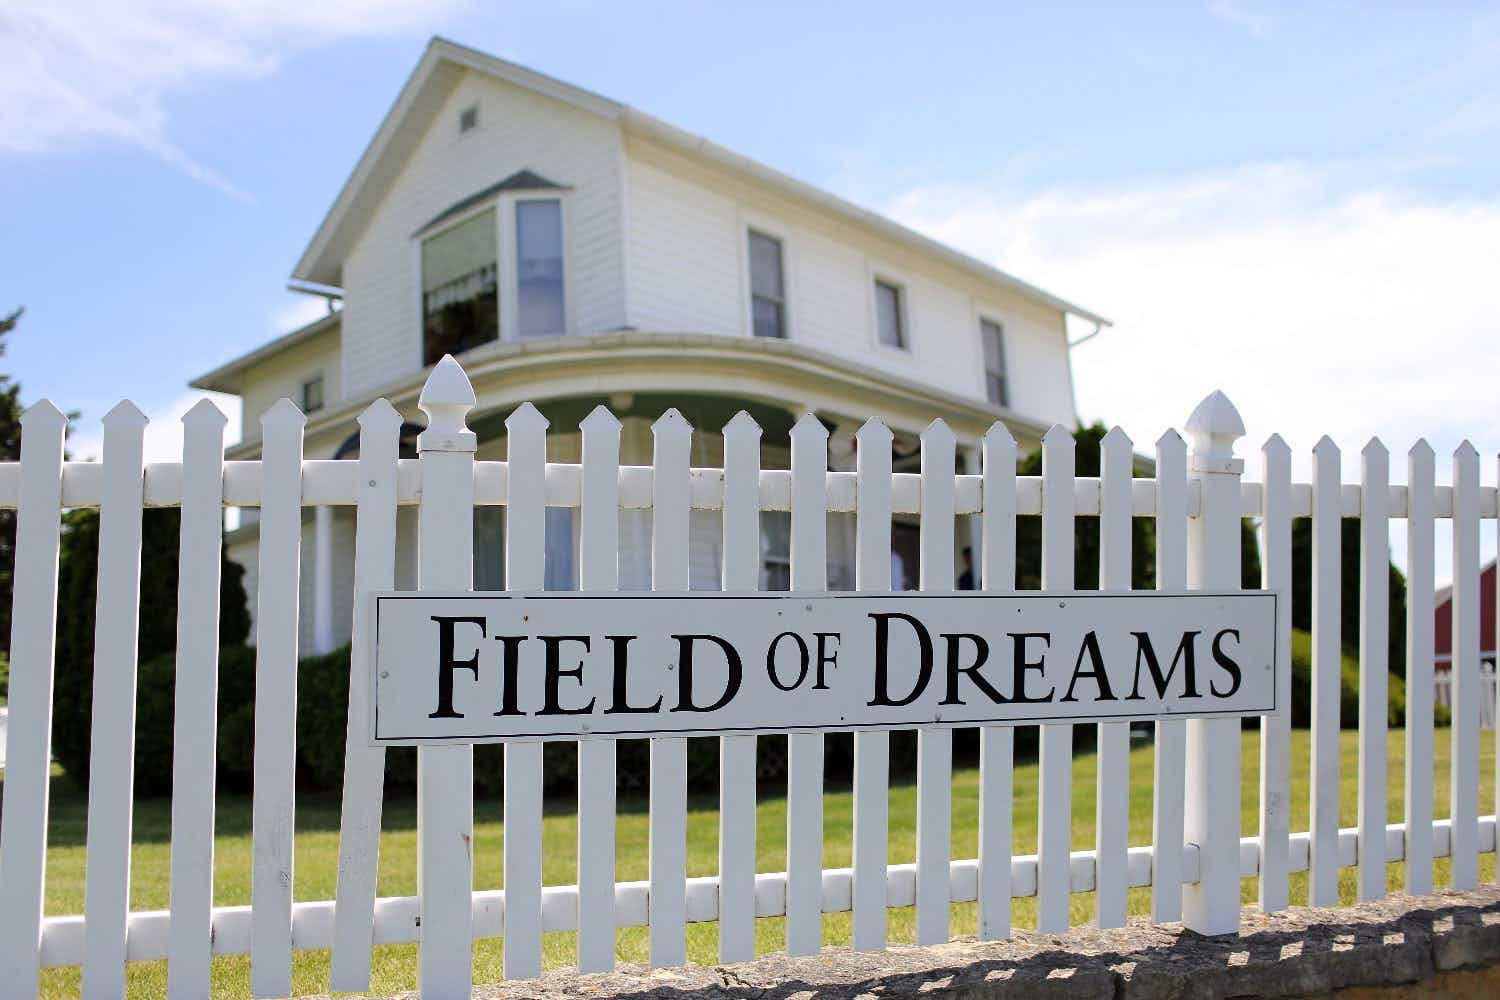 Spend the night at the iconic Field of Dreams house in Iowa